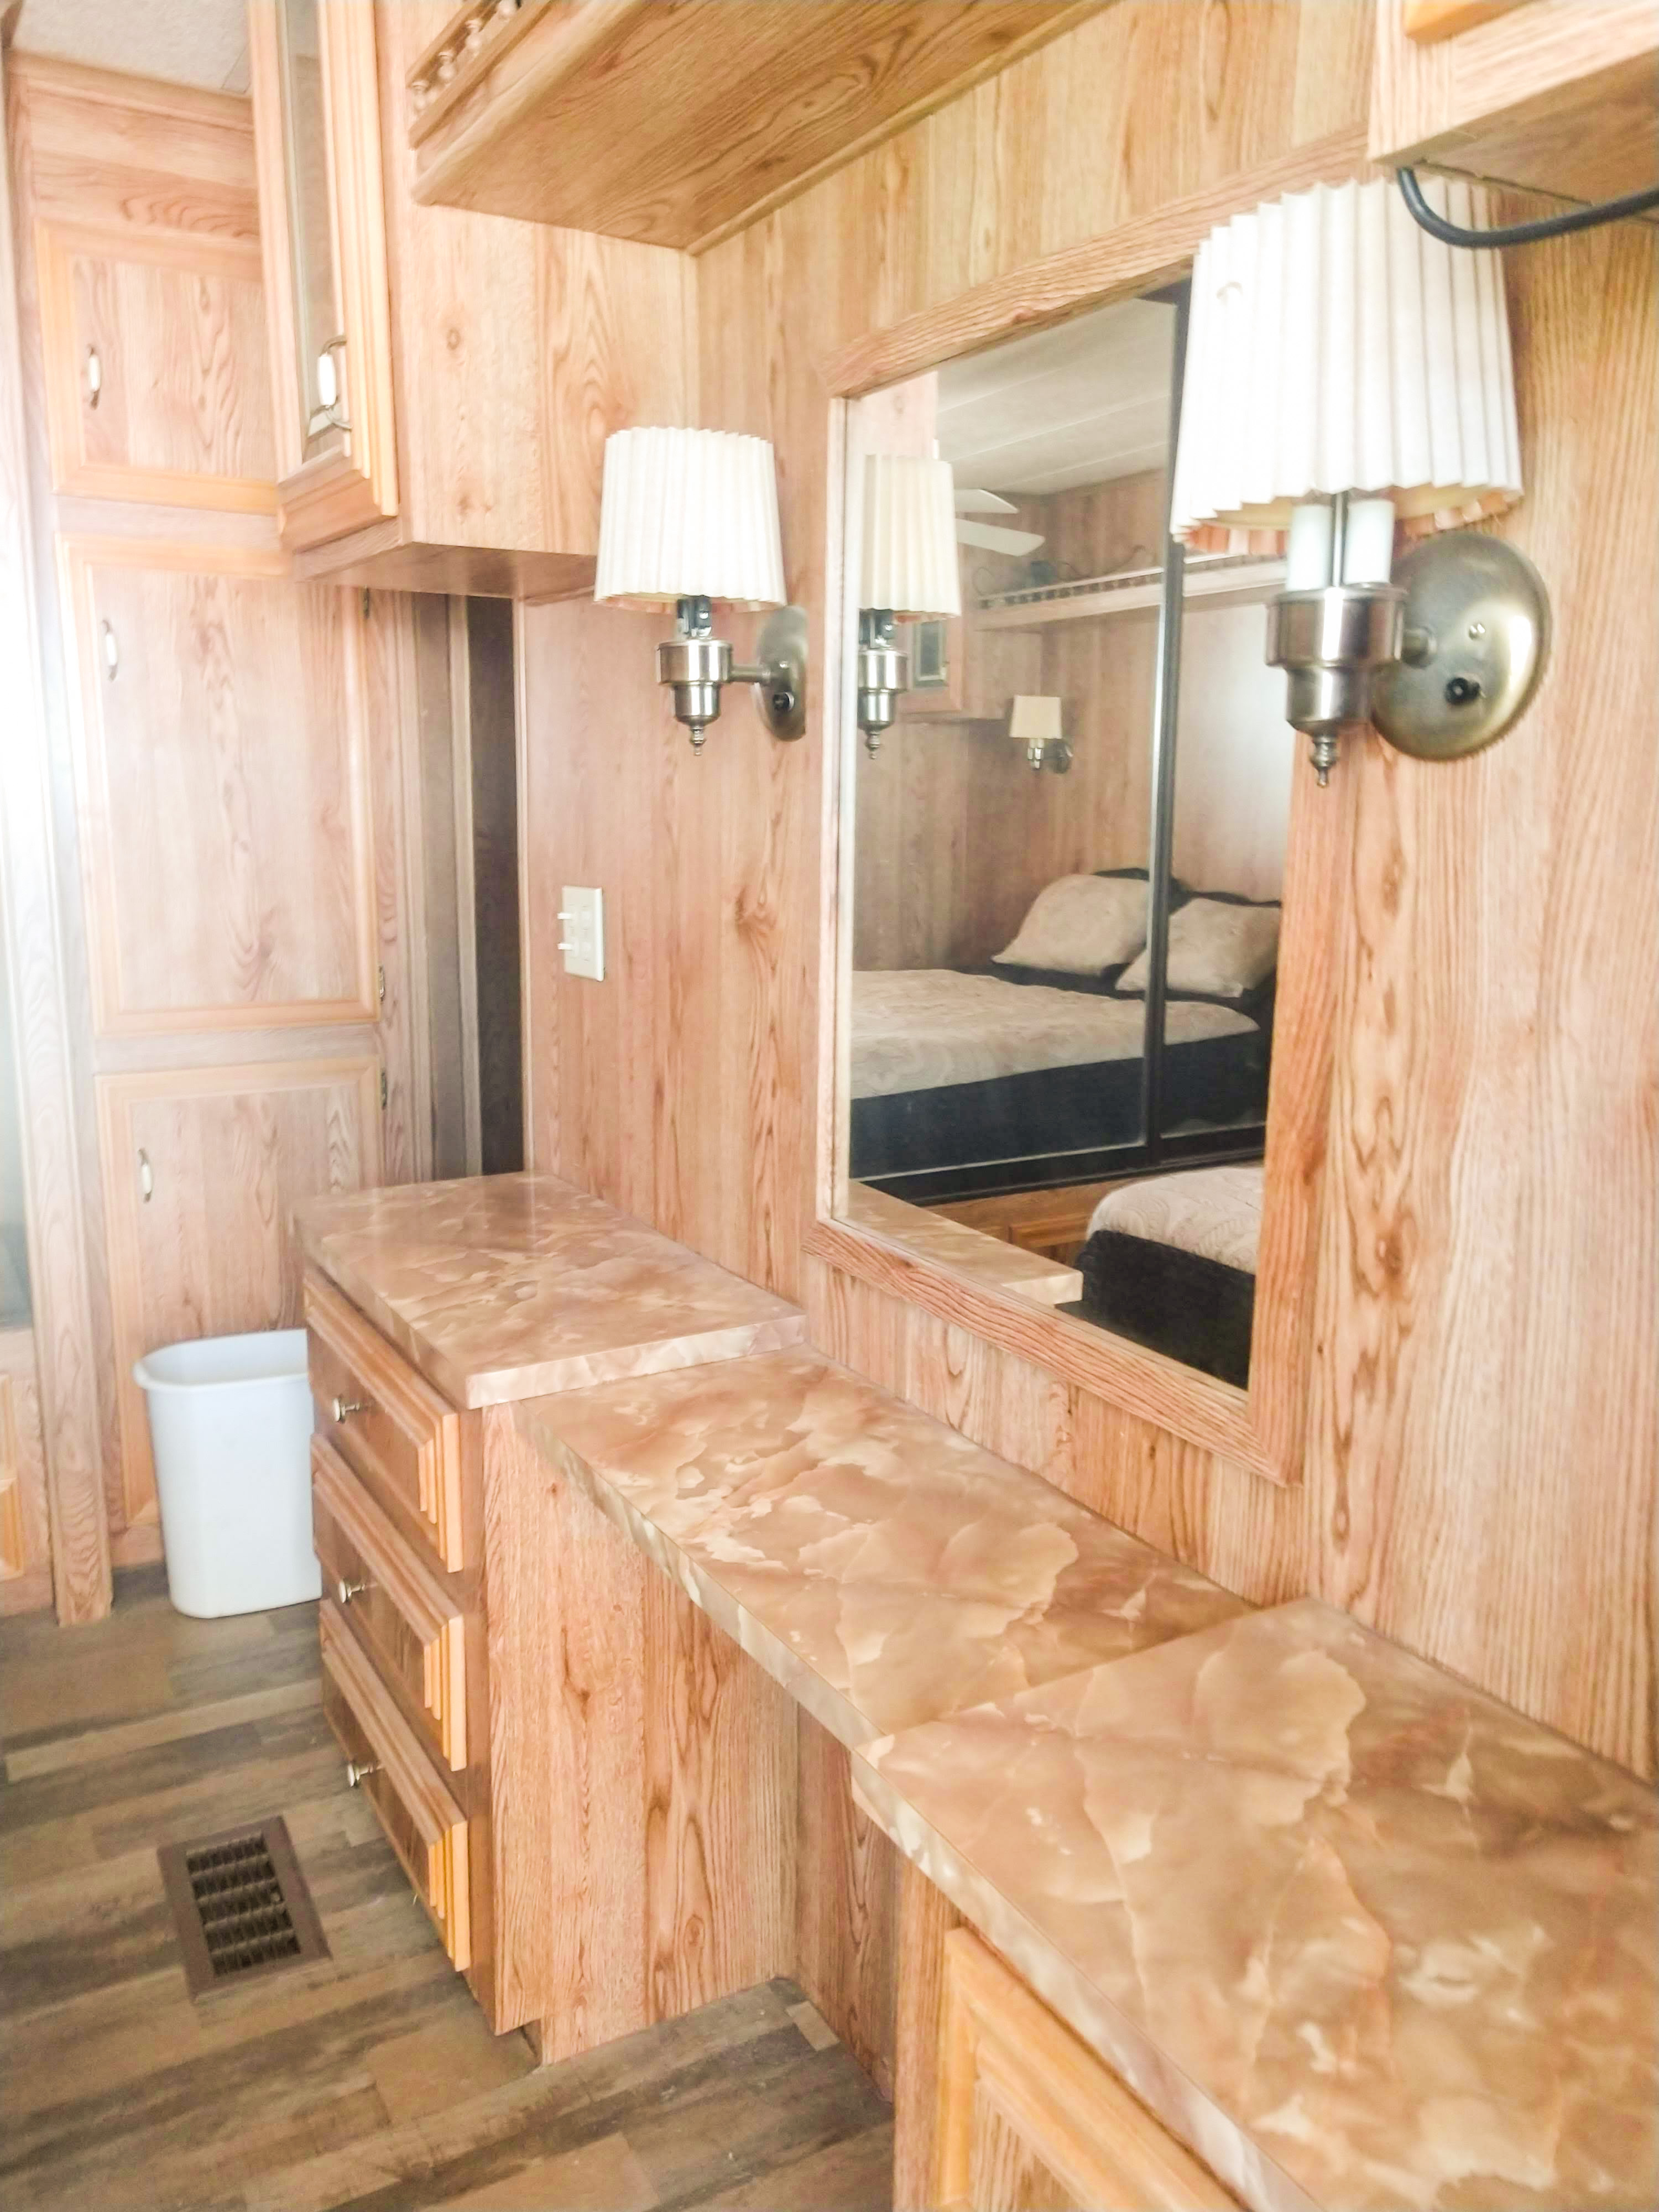 Fully furnished facilities for convenience at the top RV park in Yuma